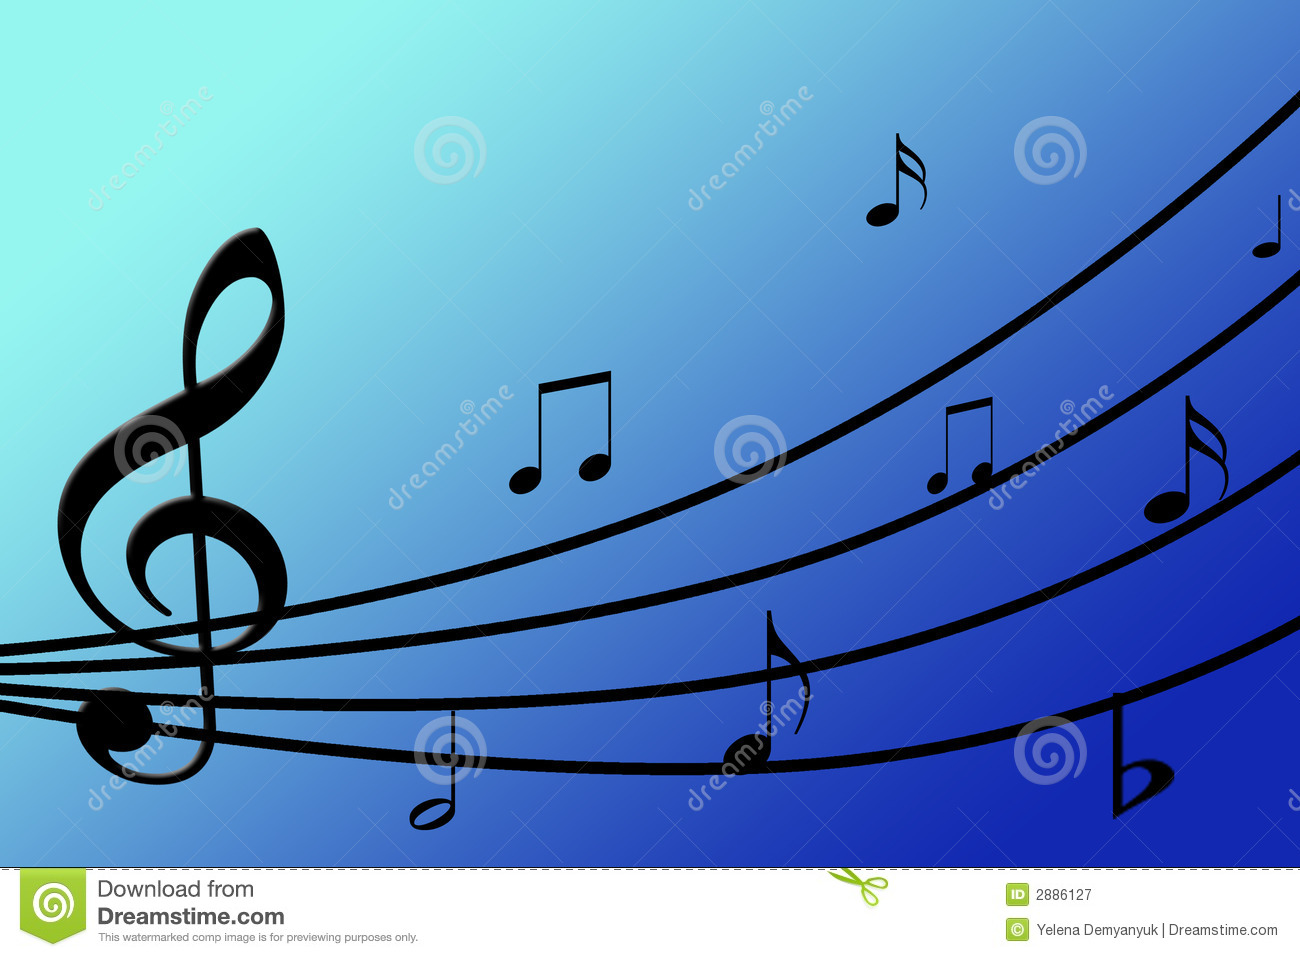 ... Musical Background Royalty Free Stock Photography - Image: 2886127: www.dreamstime.com/royalty-free-stock-photography-beautiful-musical...